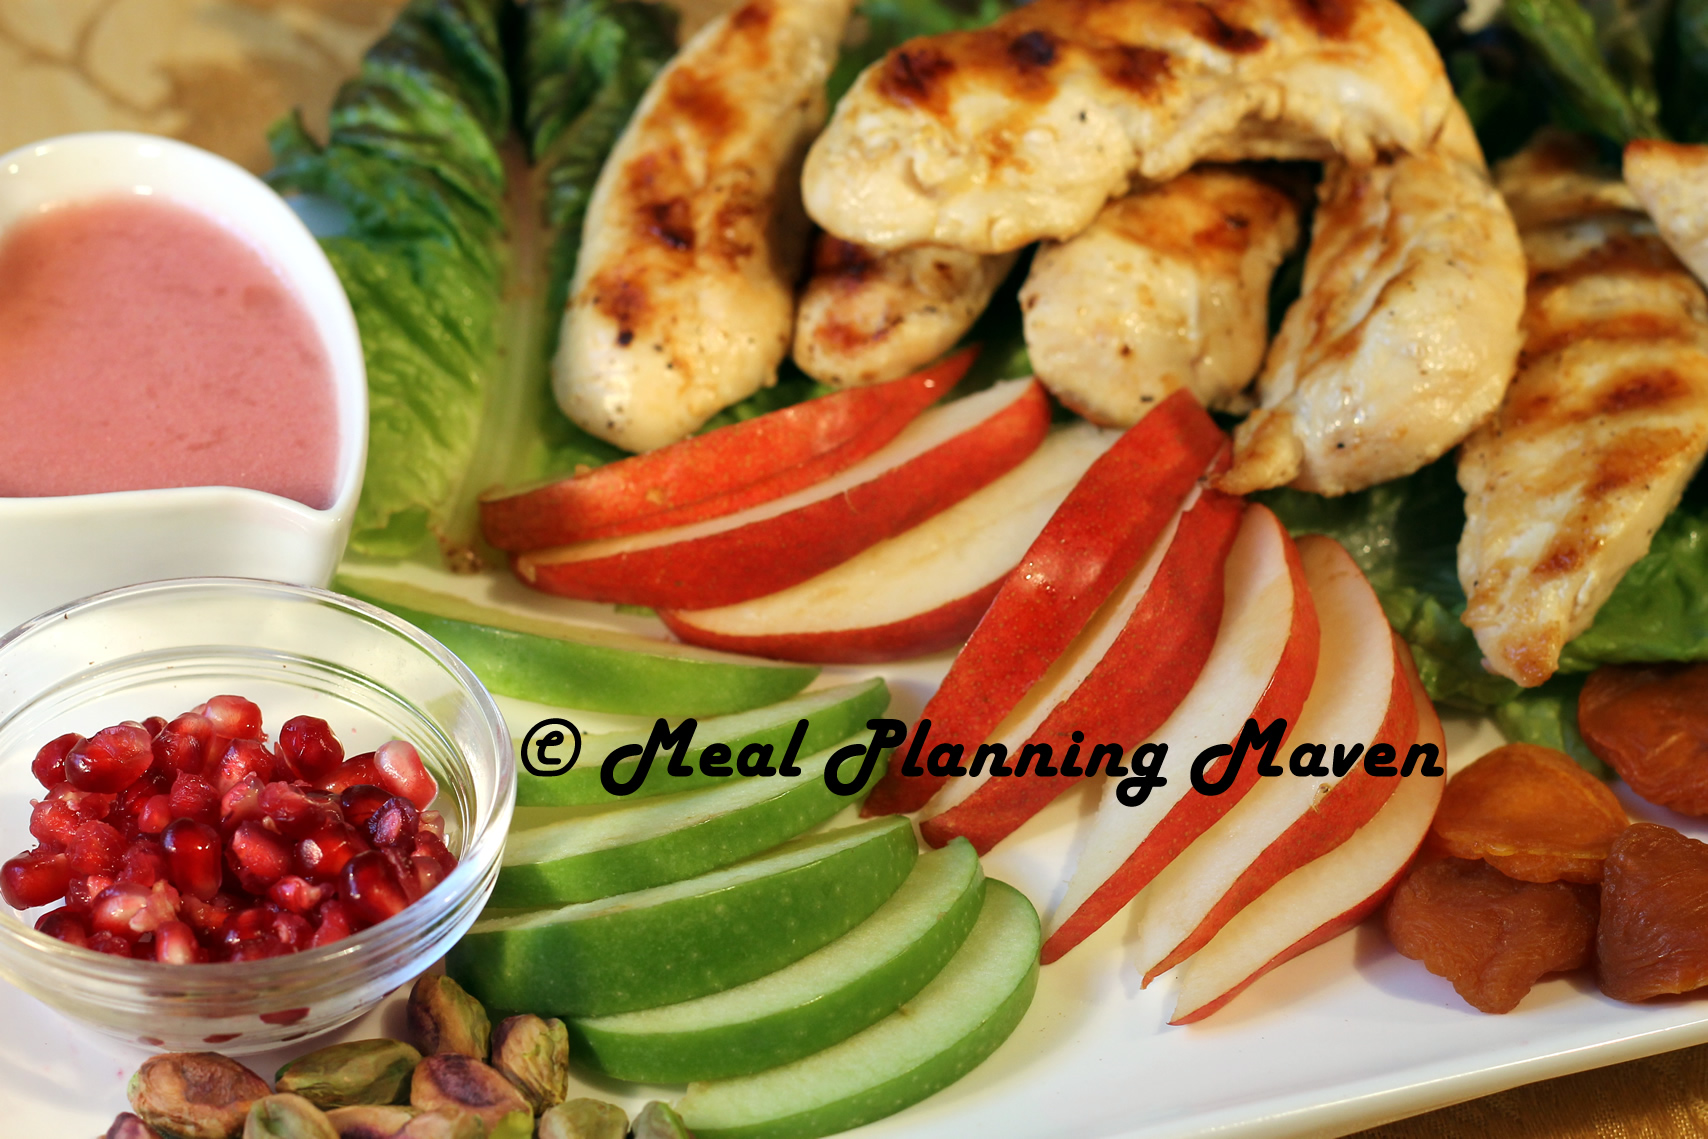 Grilled Chicken Salad with Pomegranate Vinaigrette